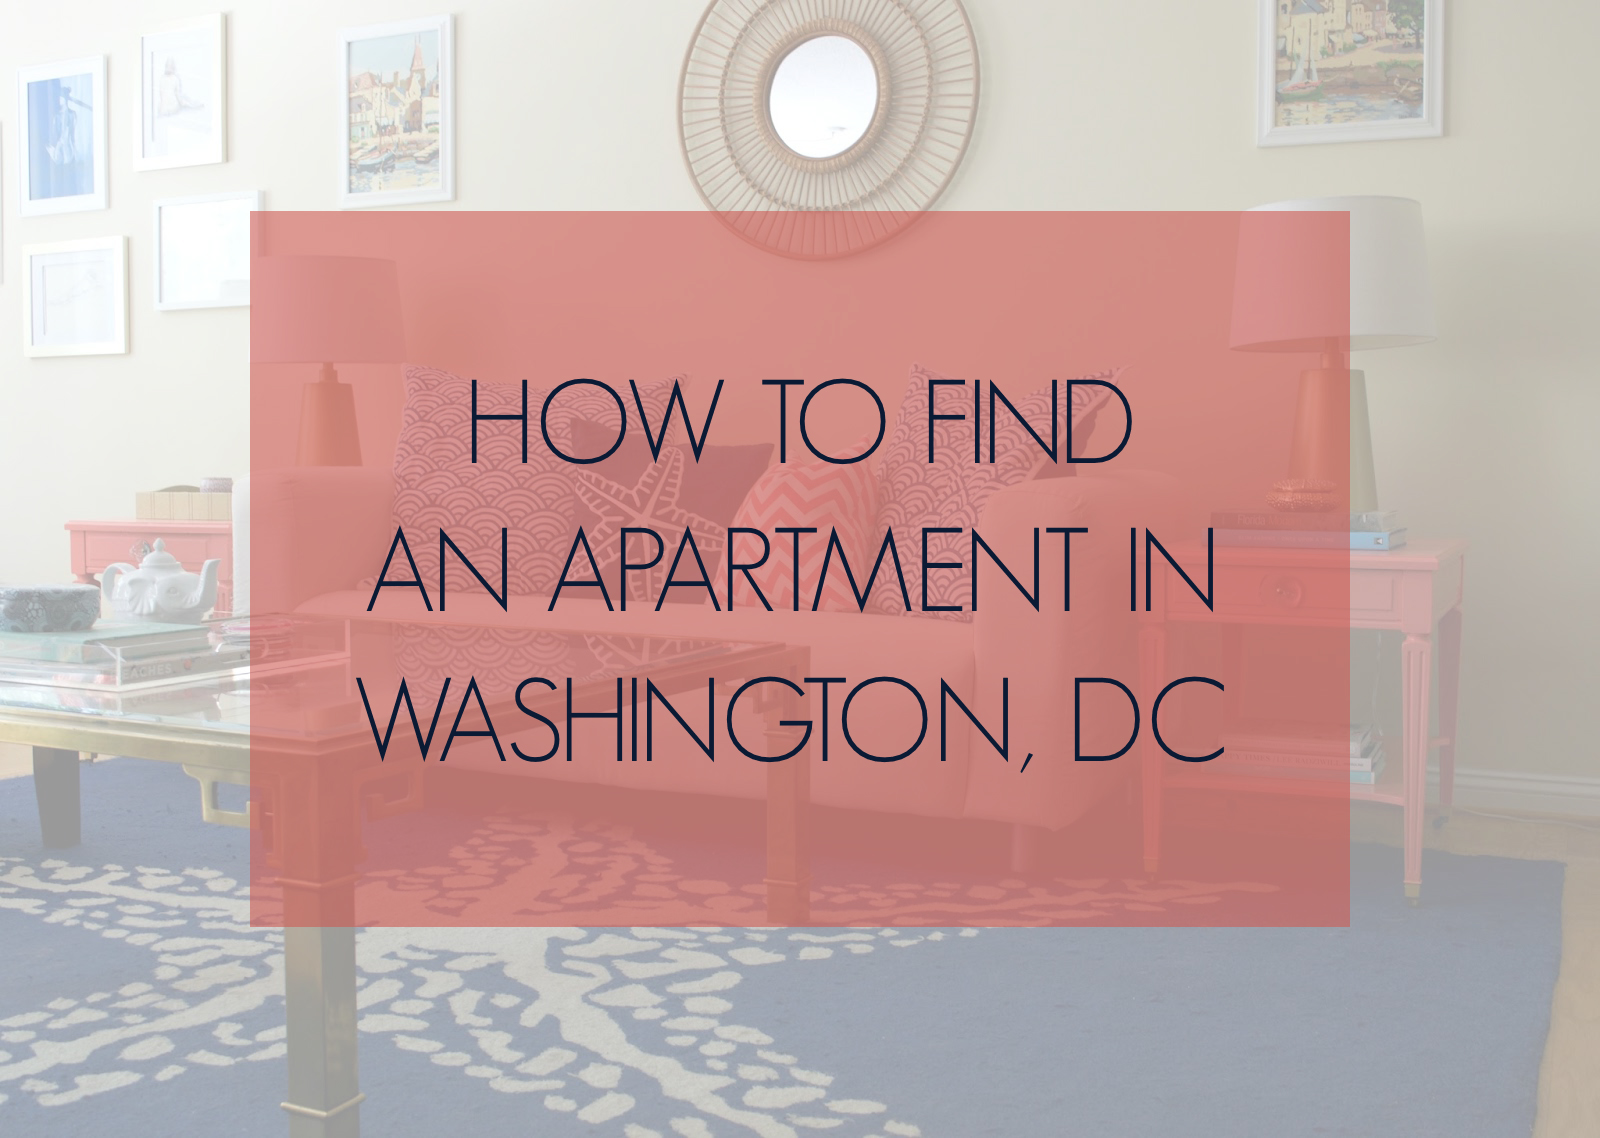 How Do I Find An Apartment in DC?